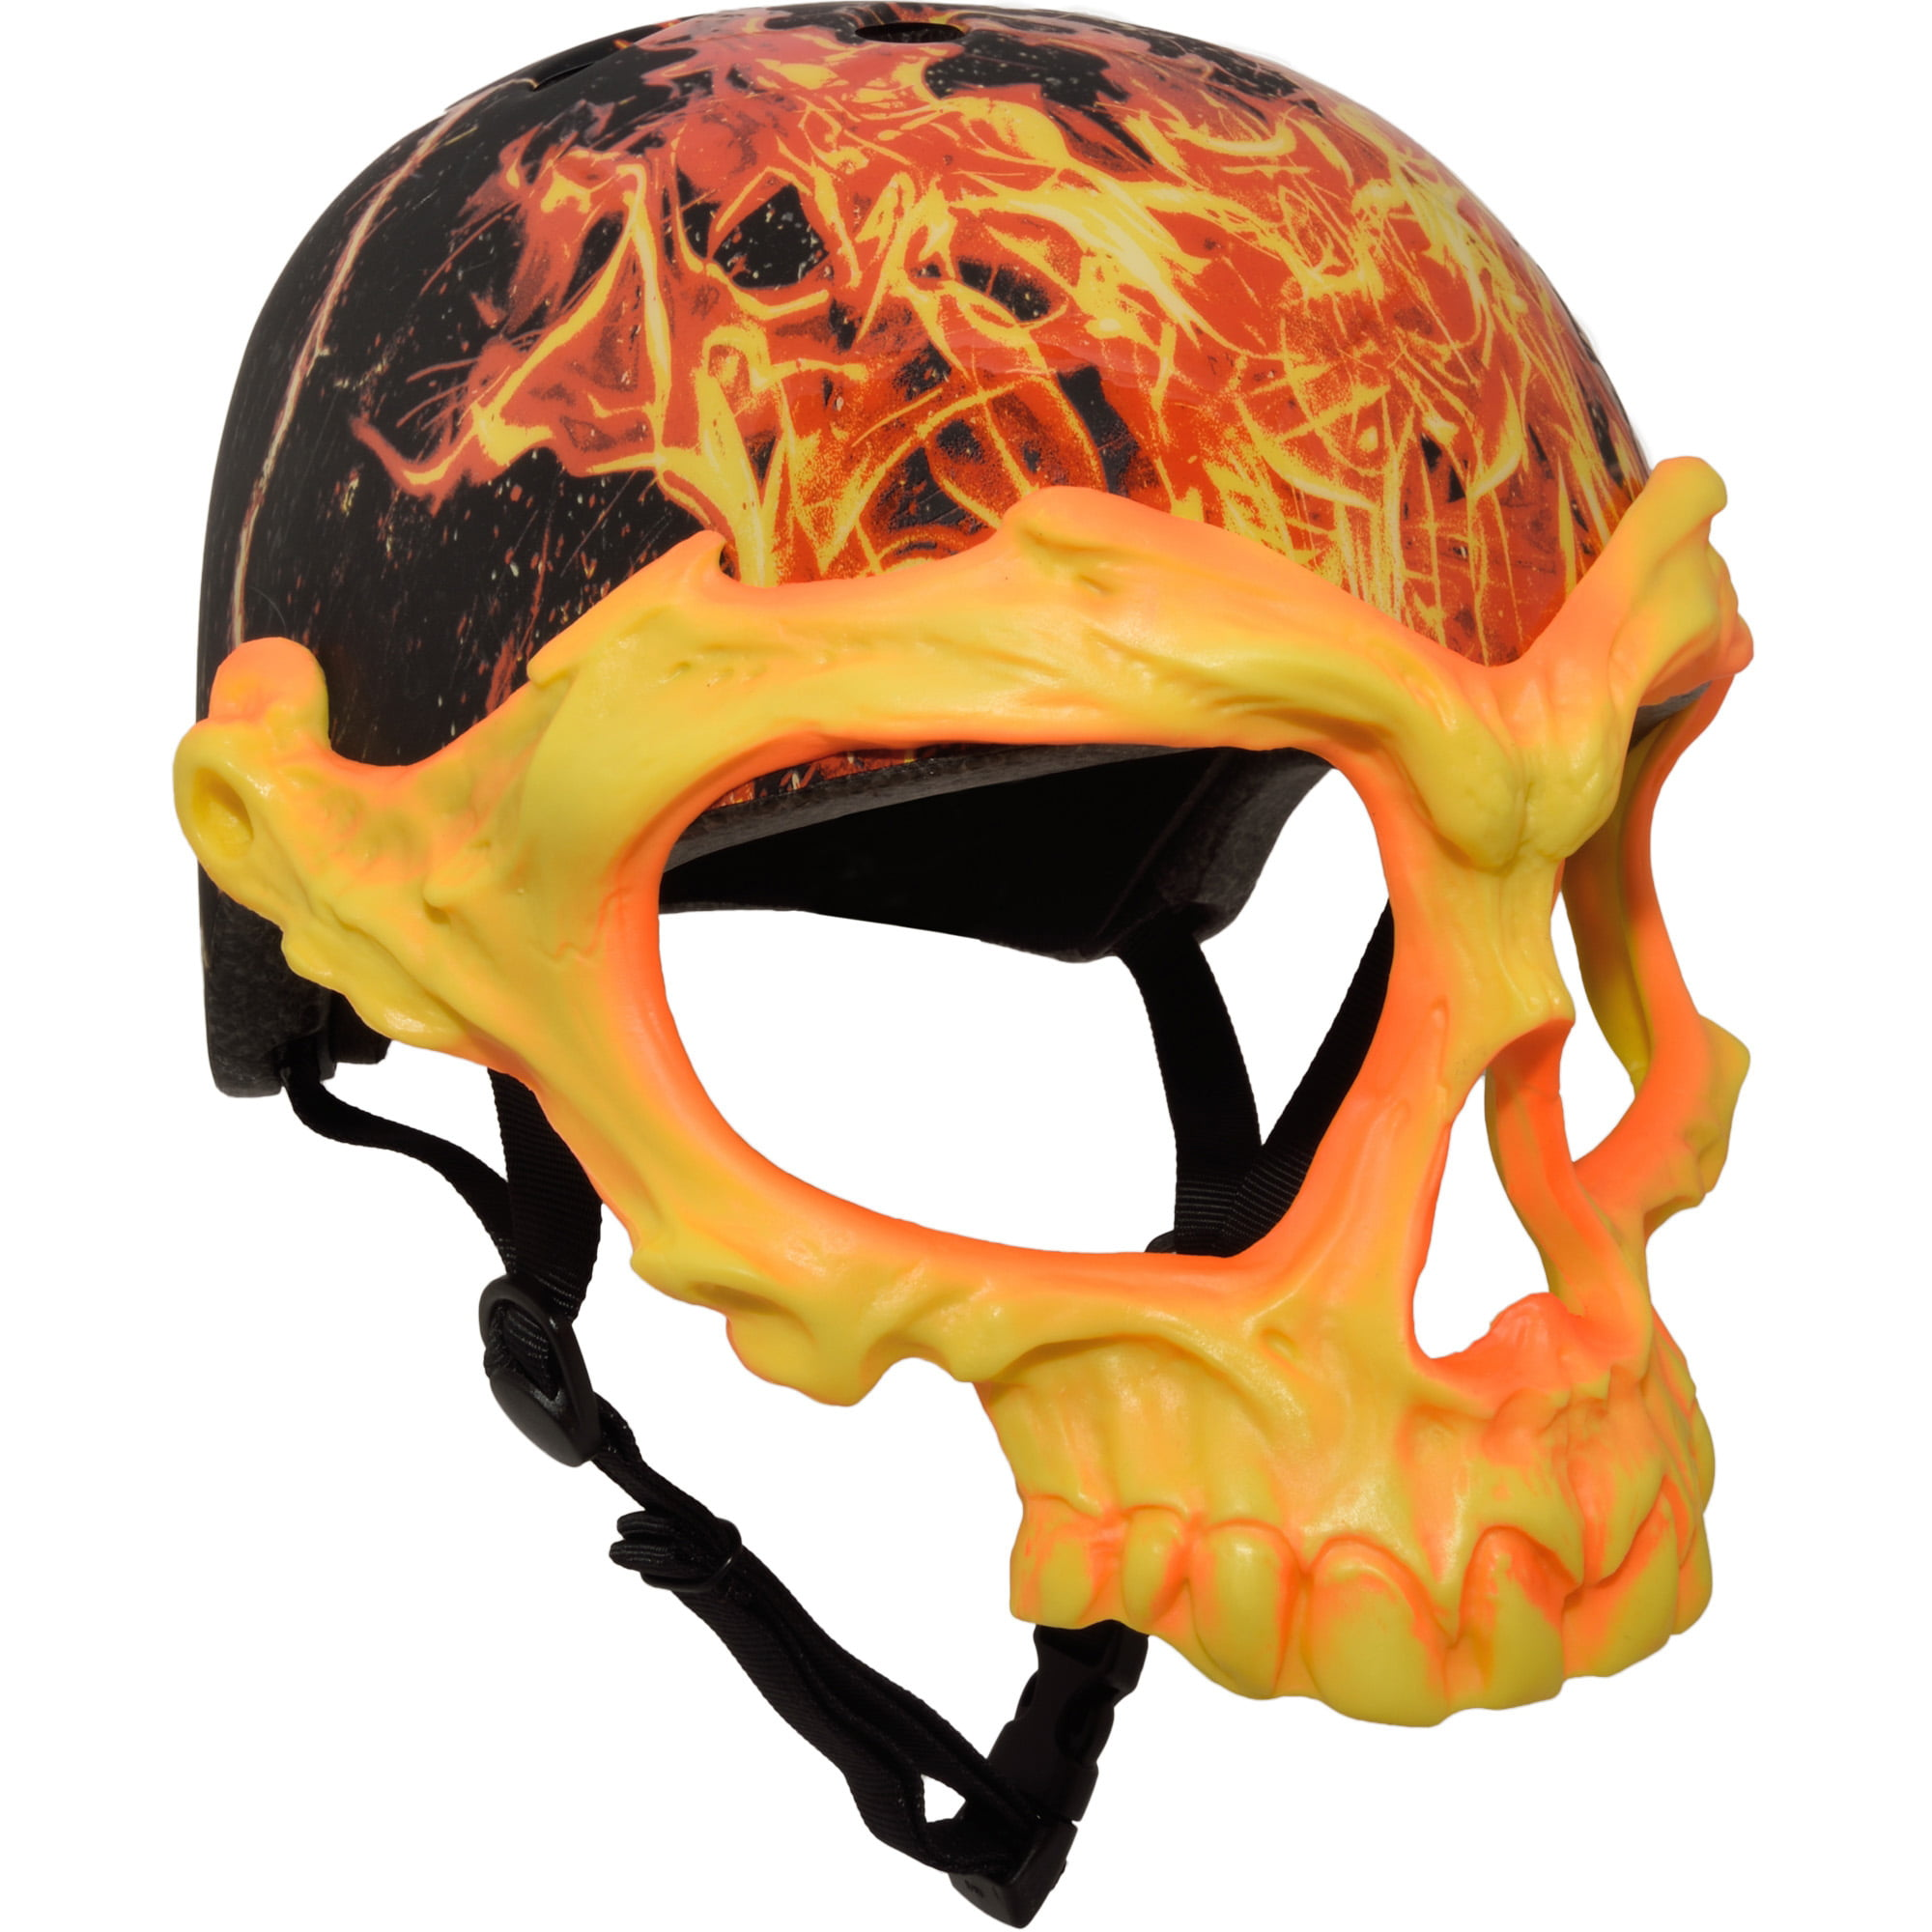 C-Preme Krash Inferno Skull Mask Youth Bike Skate Helmet, Yellow by Vista Outdoor